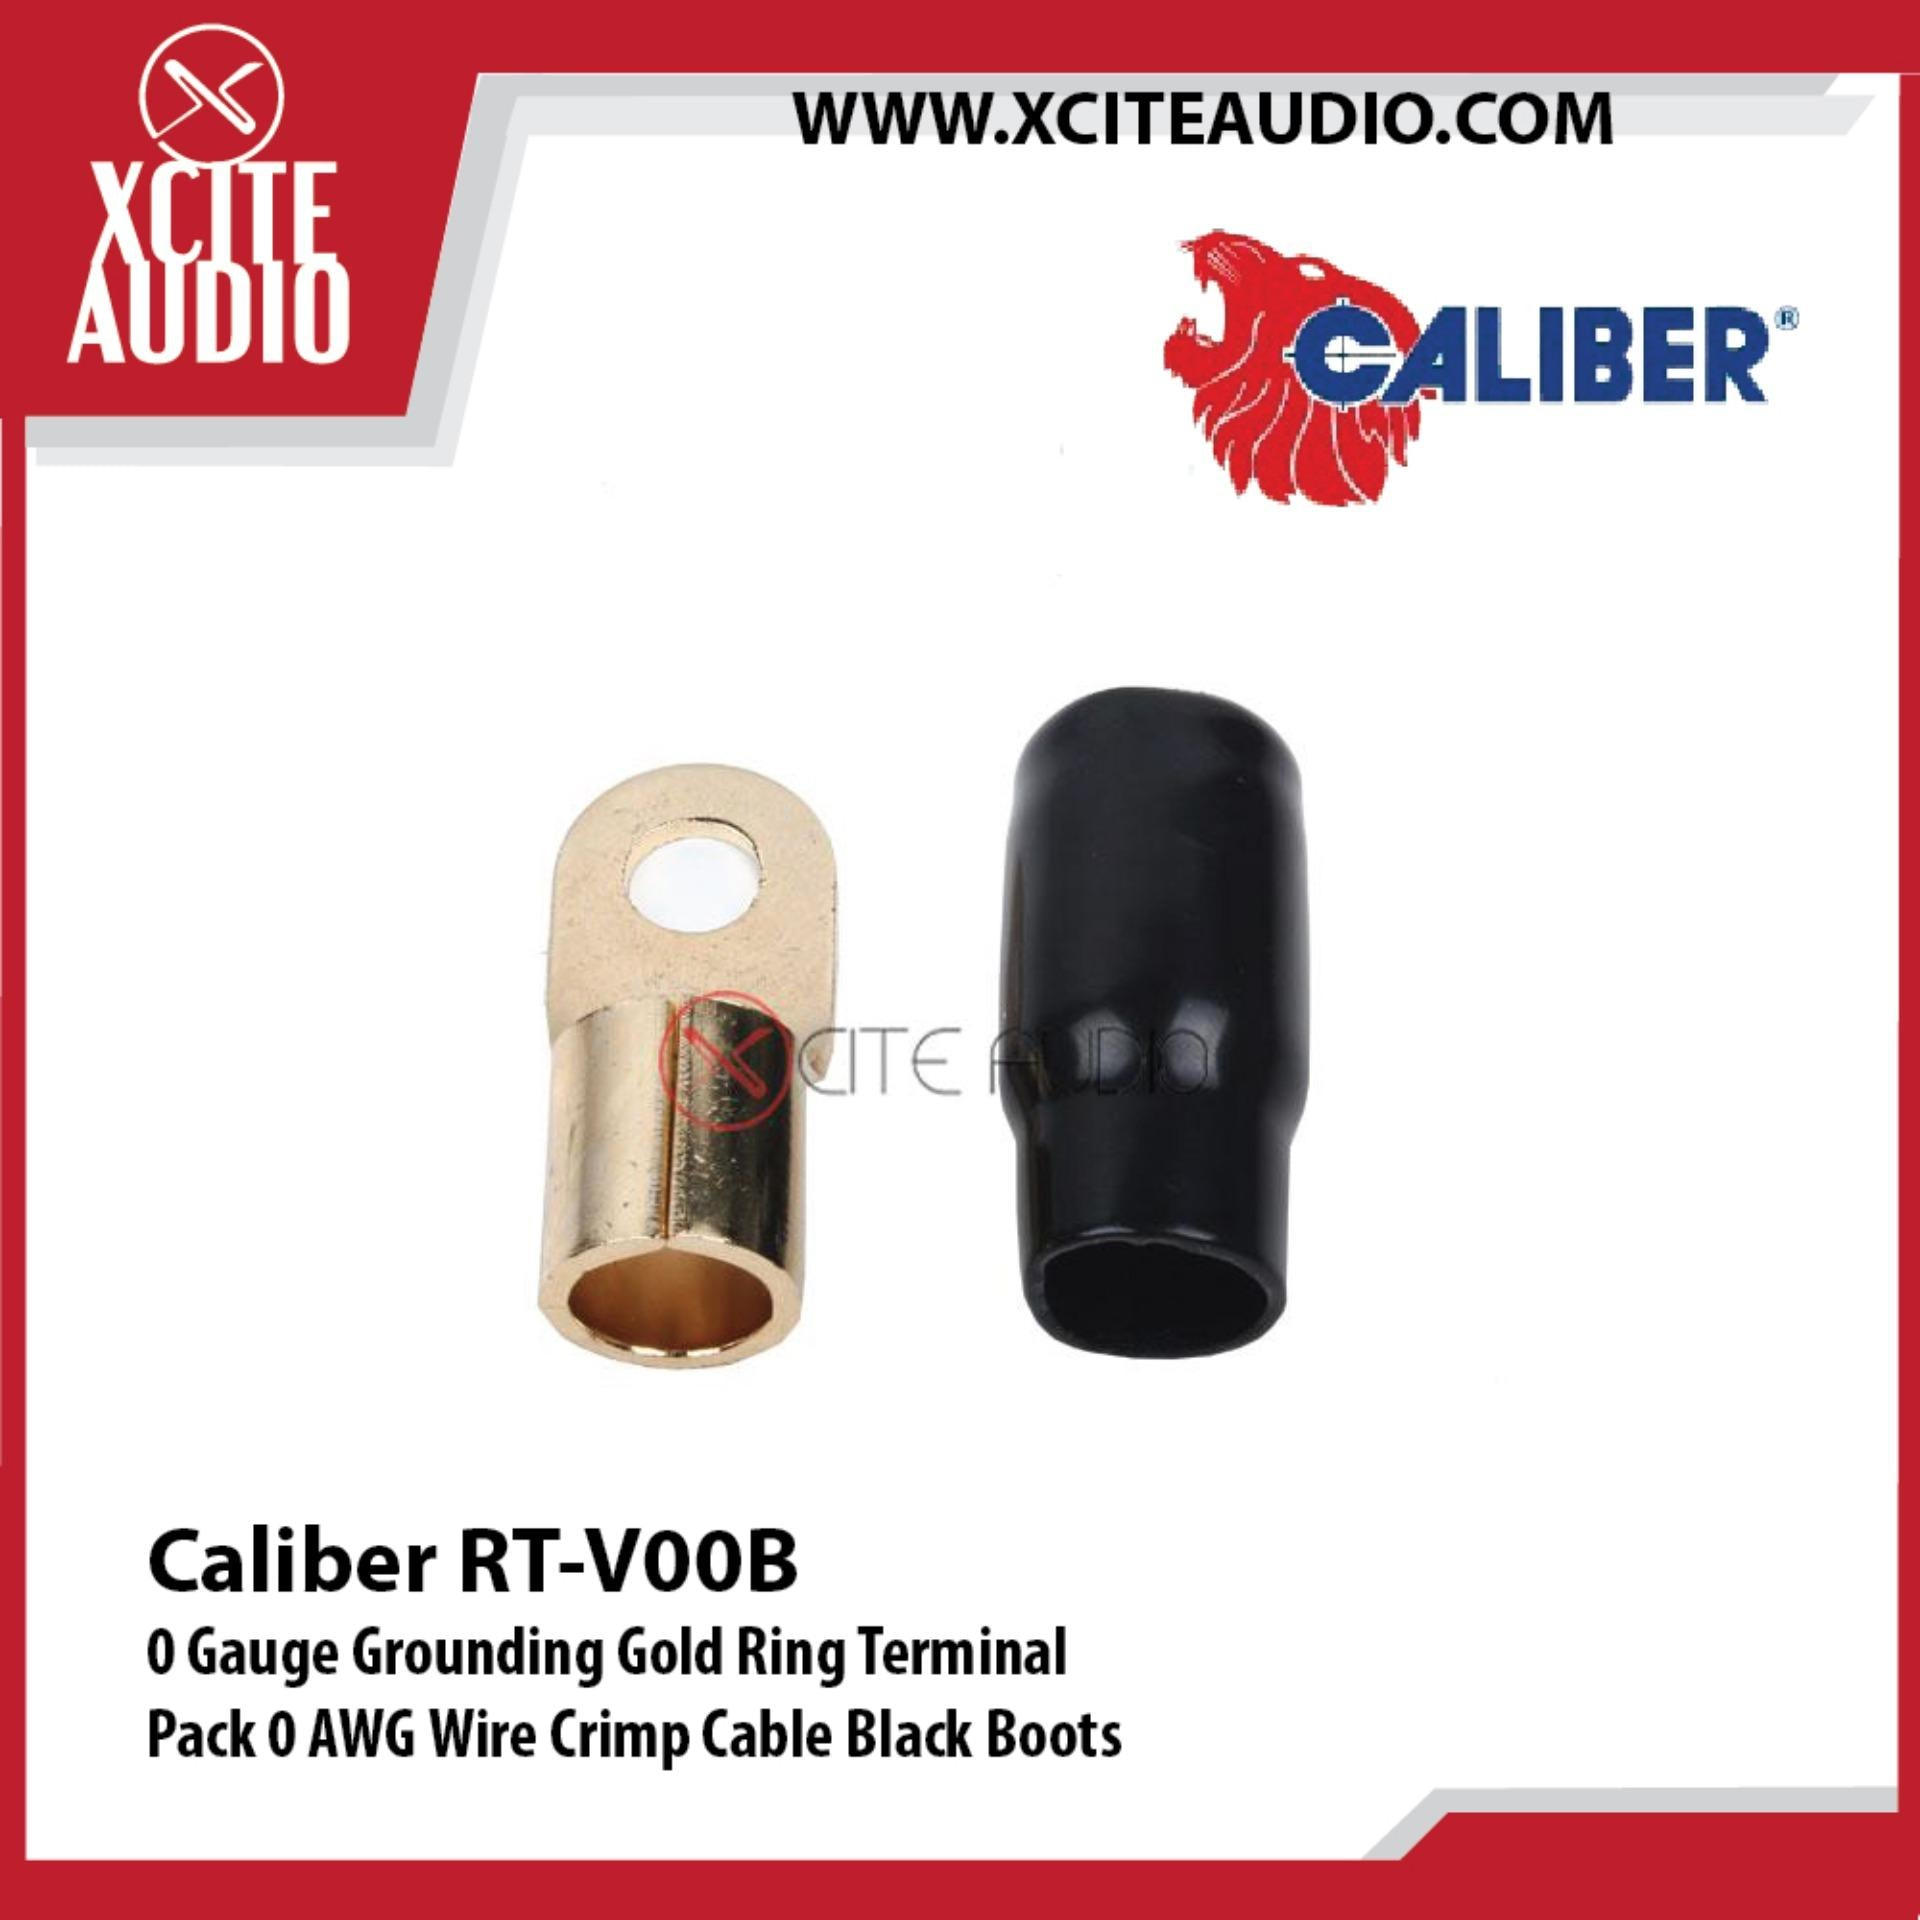 Caliber RT-V00B 0 Gauge Grounding Gold Ring Terminal 0 AWG Wire Crimp Cable Black Boots - Xcite Audio